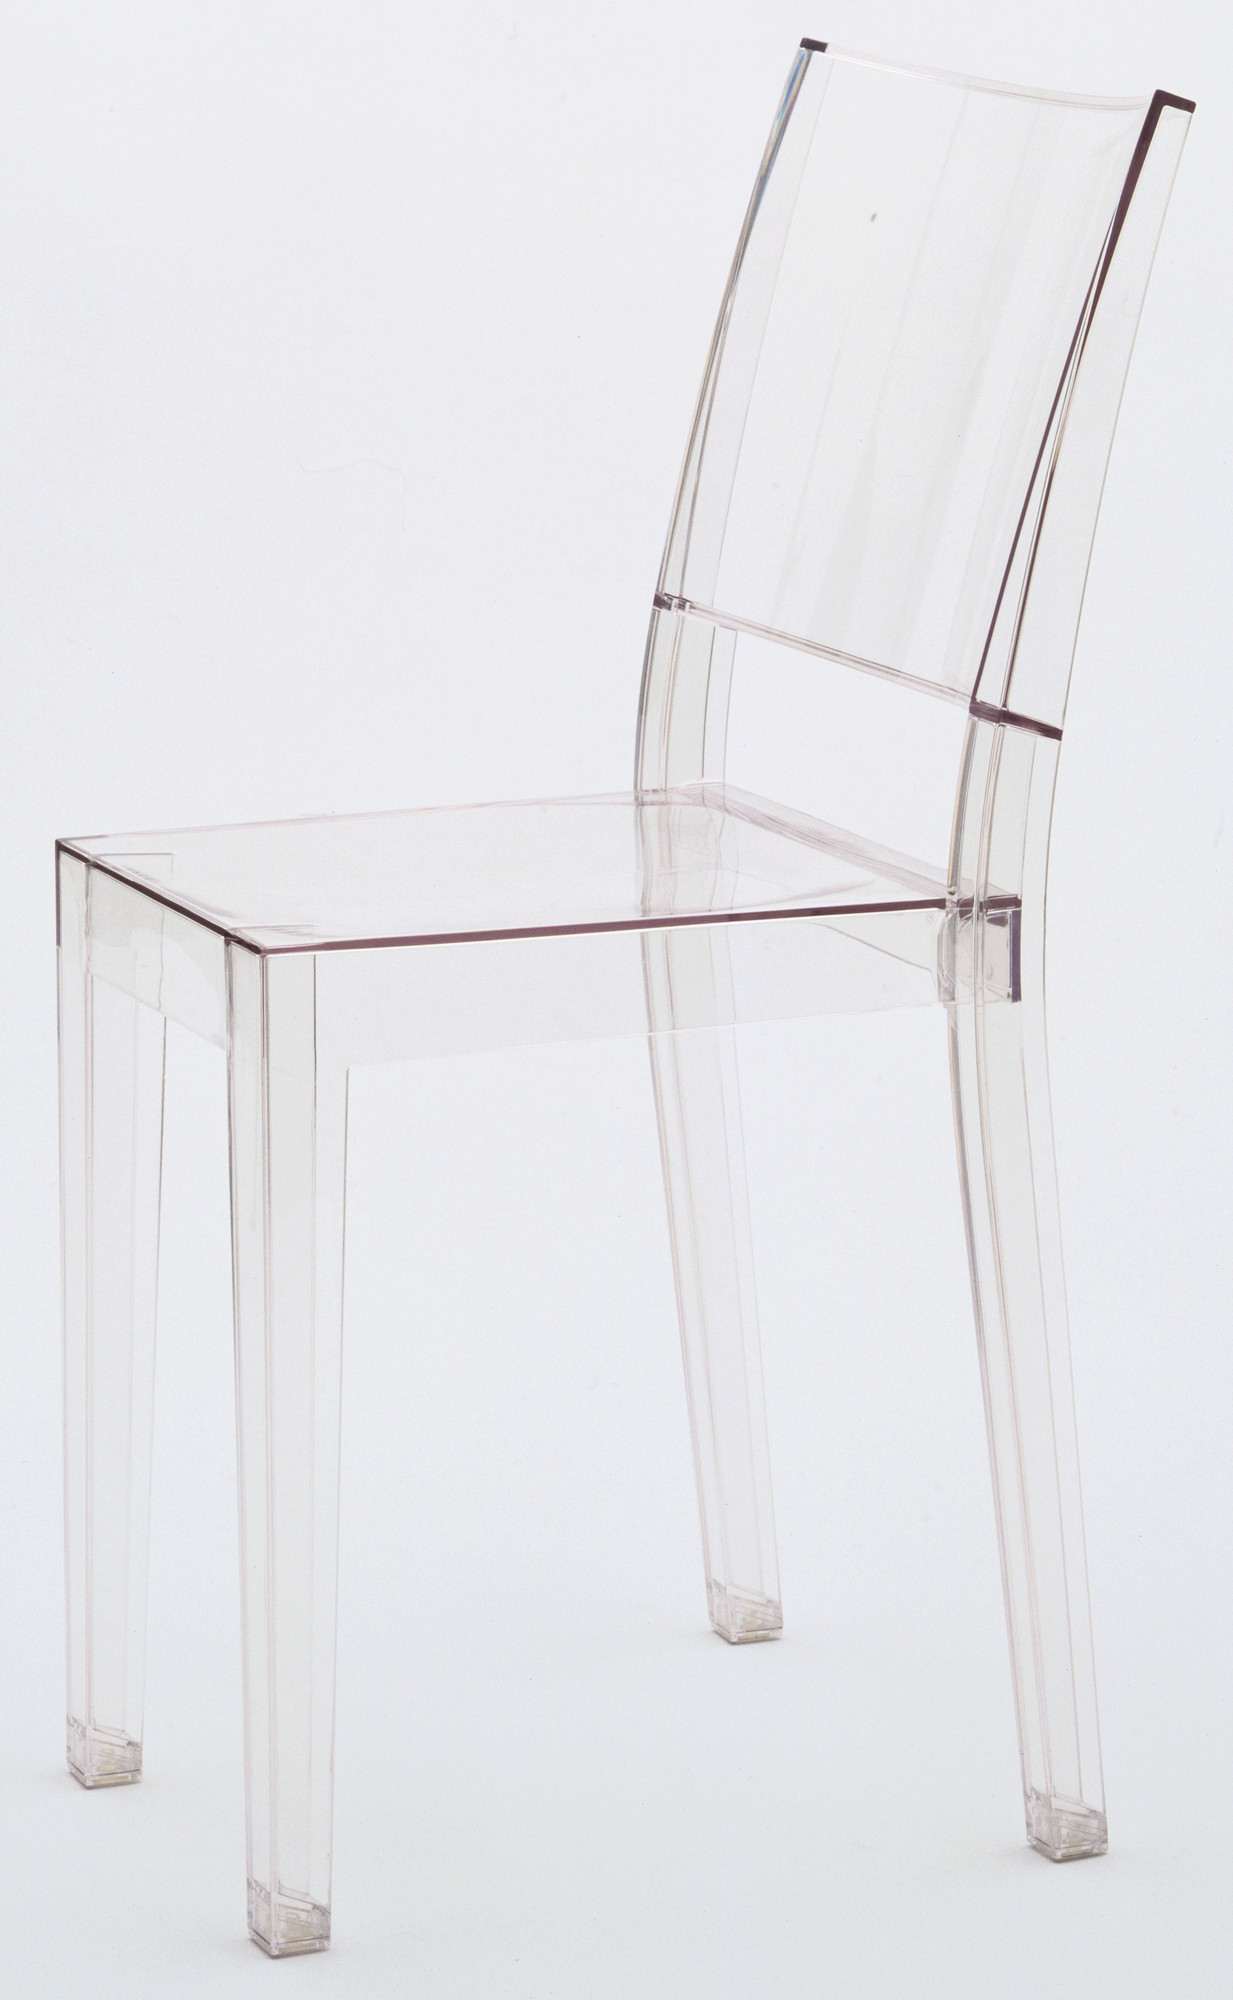 Philippe Starck. La Marie Chair. 1998